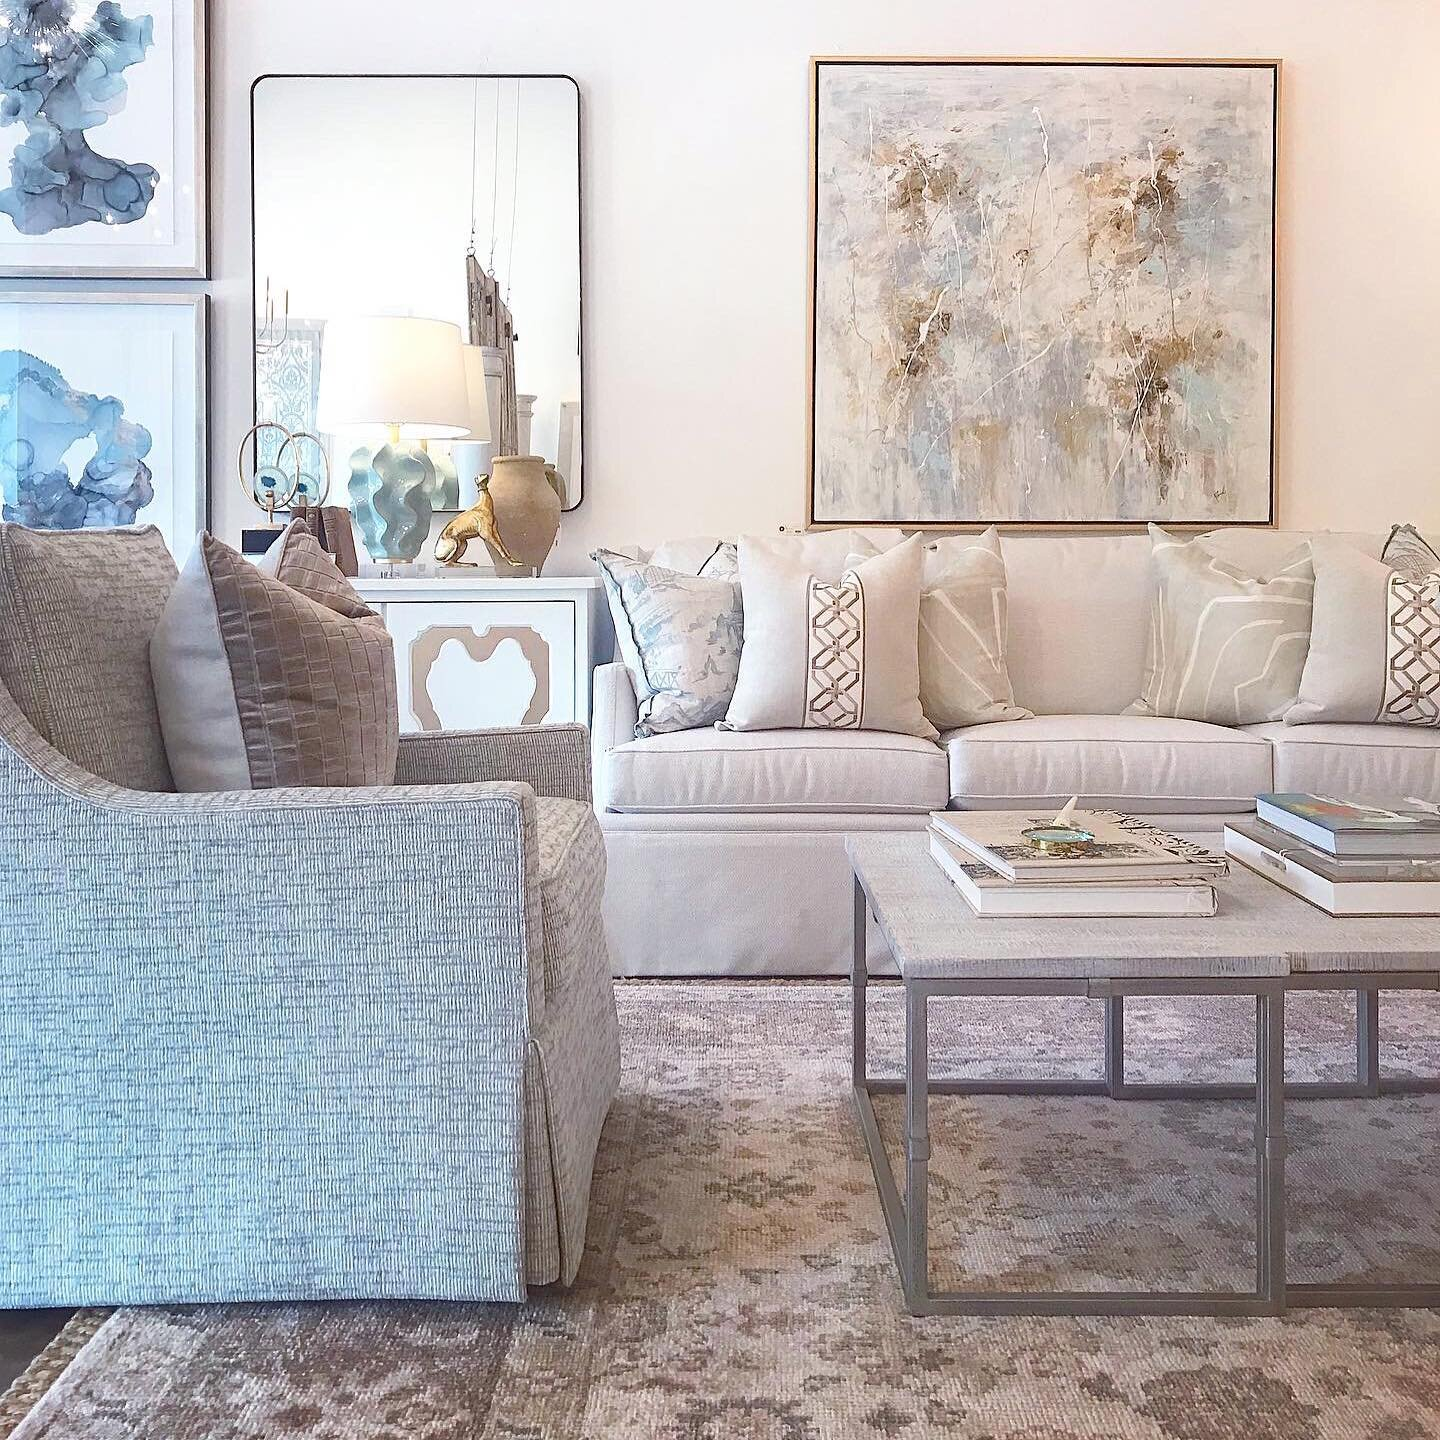 One of our favorite chair frames with beautiful blue textured upholstery! We just used a pair of 的se in a clients house 和 的y go with so much! 💕 #providencedesign #ourfavoritethings